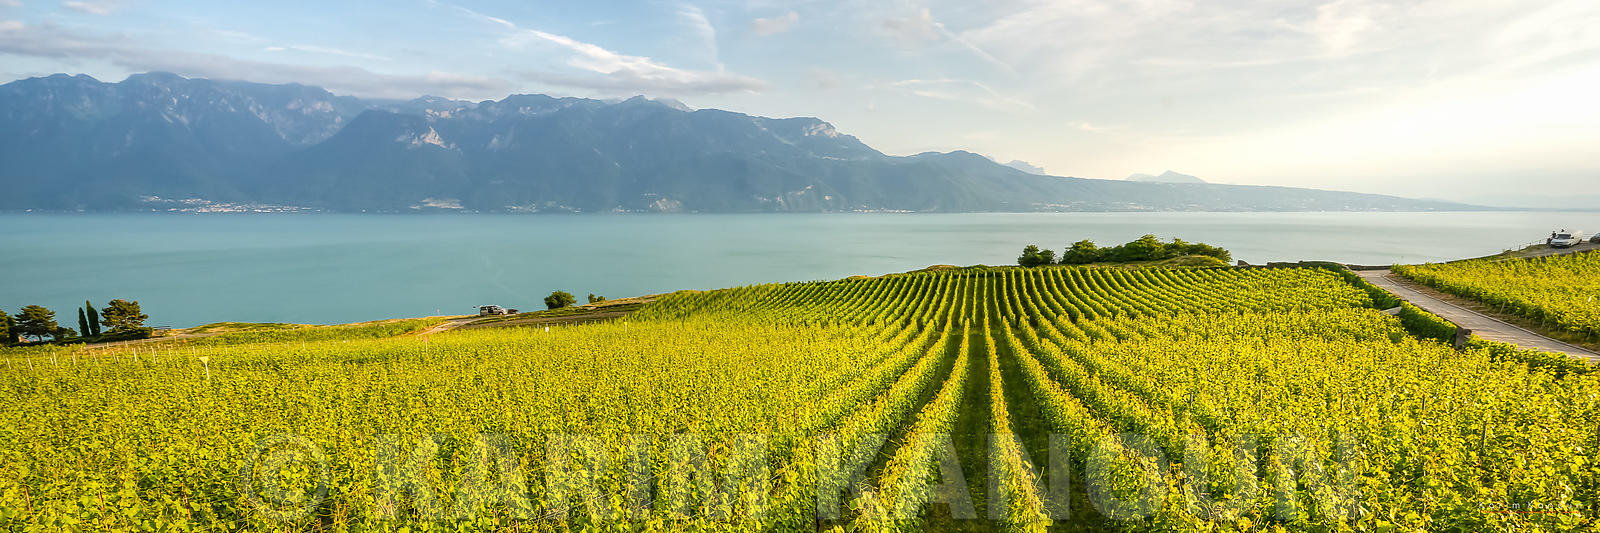 Lines of green vineyards with Lac Léman - Lavaux wineries